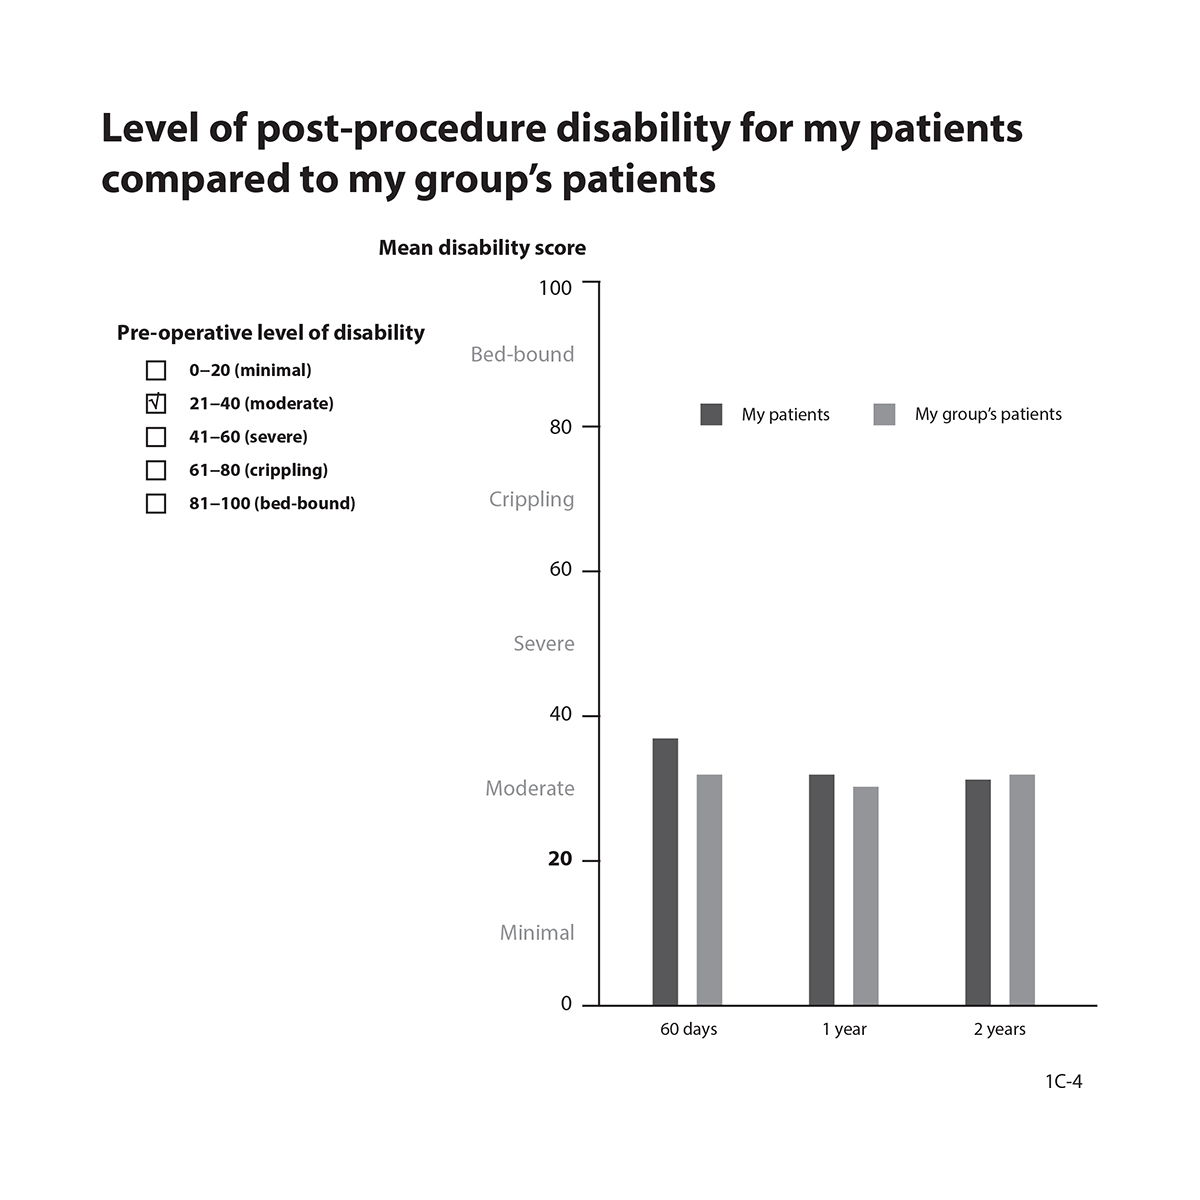 Graph showing mean level of post-procedure disability for my patients compared to my group's patients.